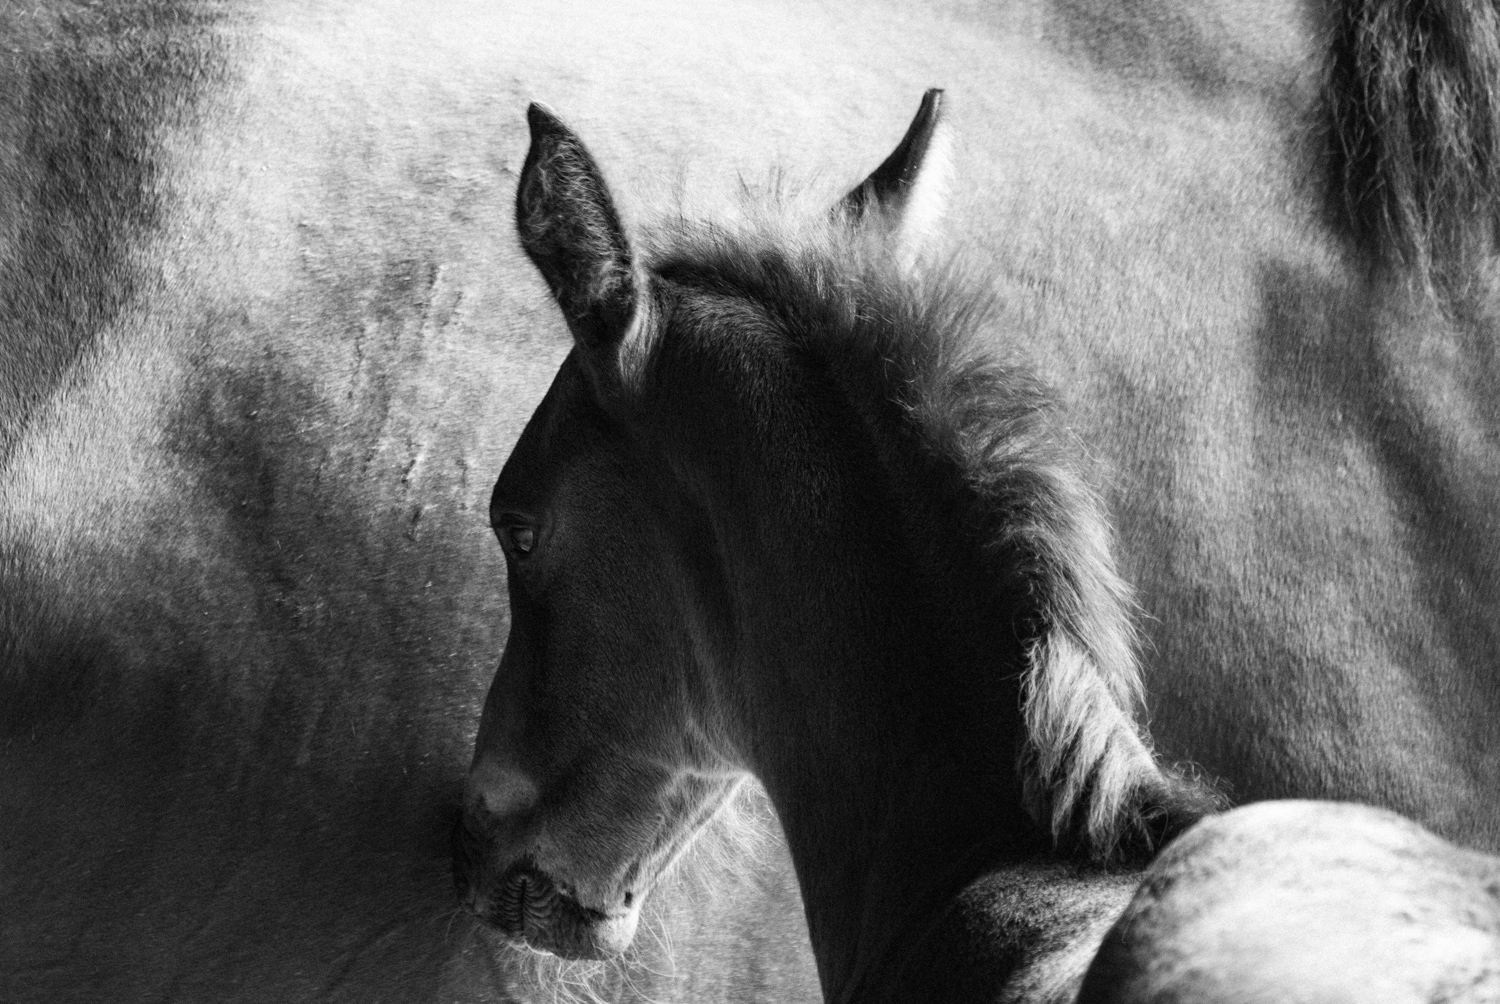 Thefoal_bw_website_SheonaAnnPhotography (1 of 1).jpg